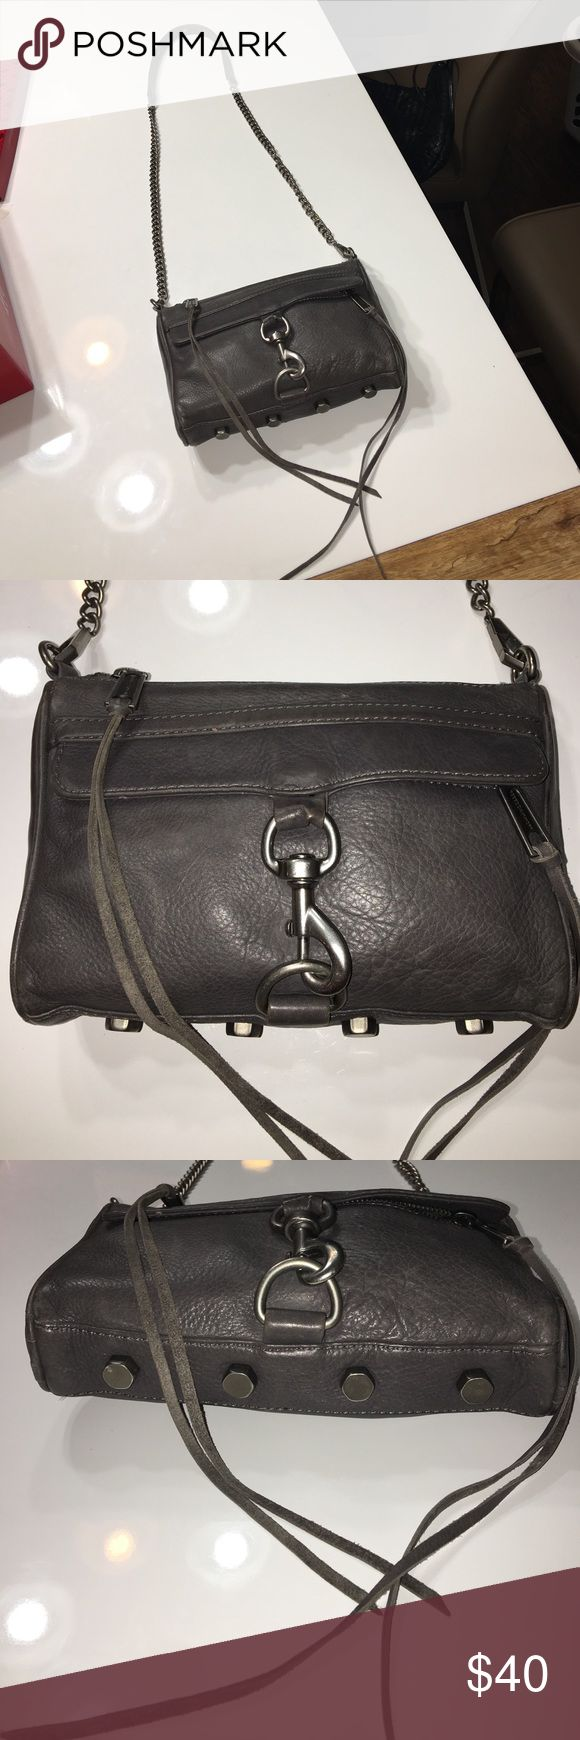 """Authentic Rebecca Minkoff leather crossbody purse Authentic Rebecca Minkoff leather crossbody purse 9"""" long 6"""" tall 2"""" wide Strap Drop 23"""" has light scuffs and discolorations throughout light wear on corners Rebecca Minkoff Bags Crossbody Bags"""